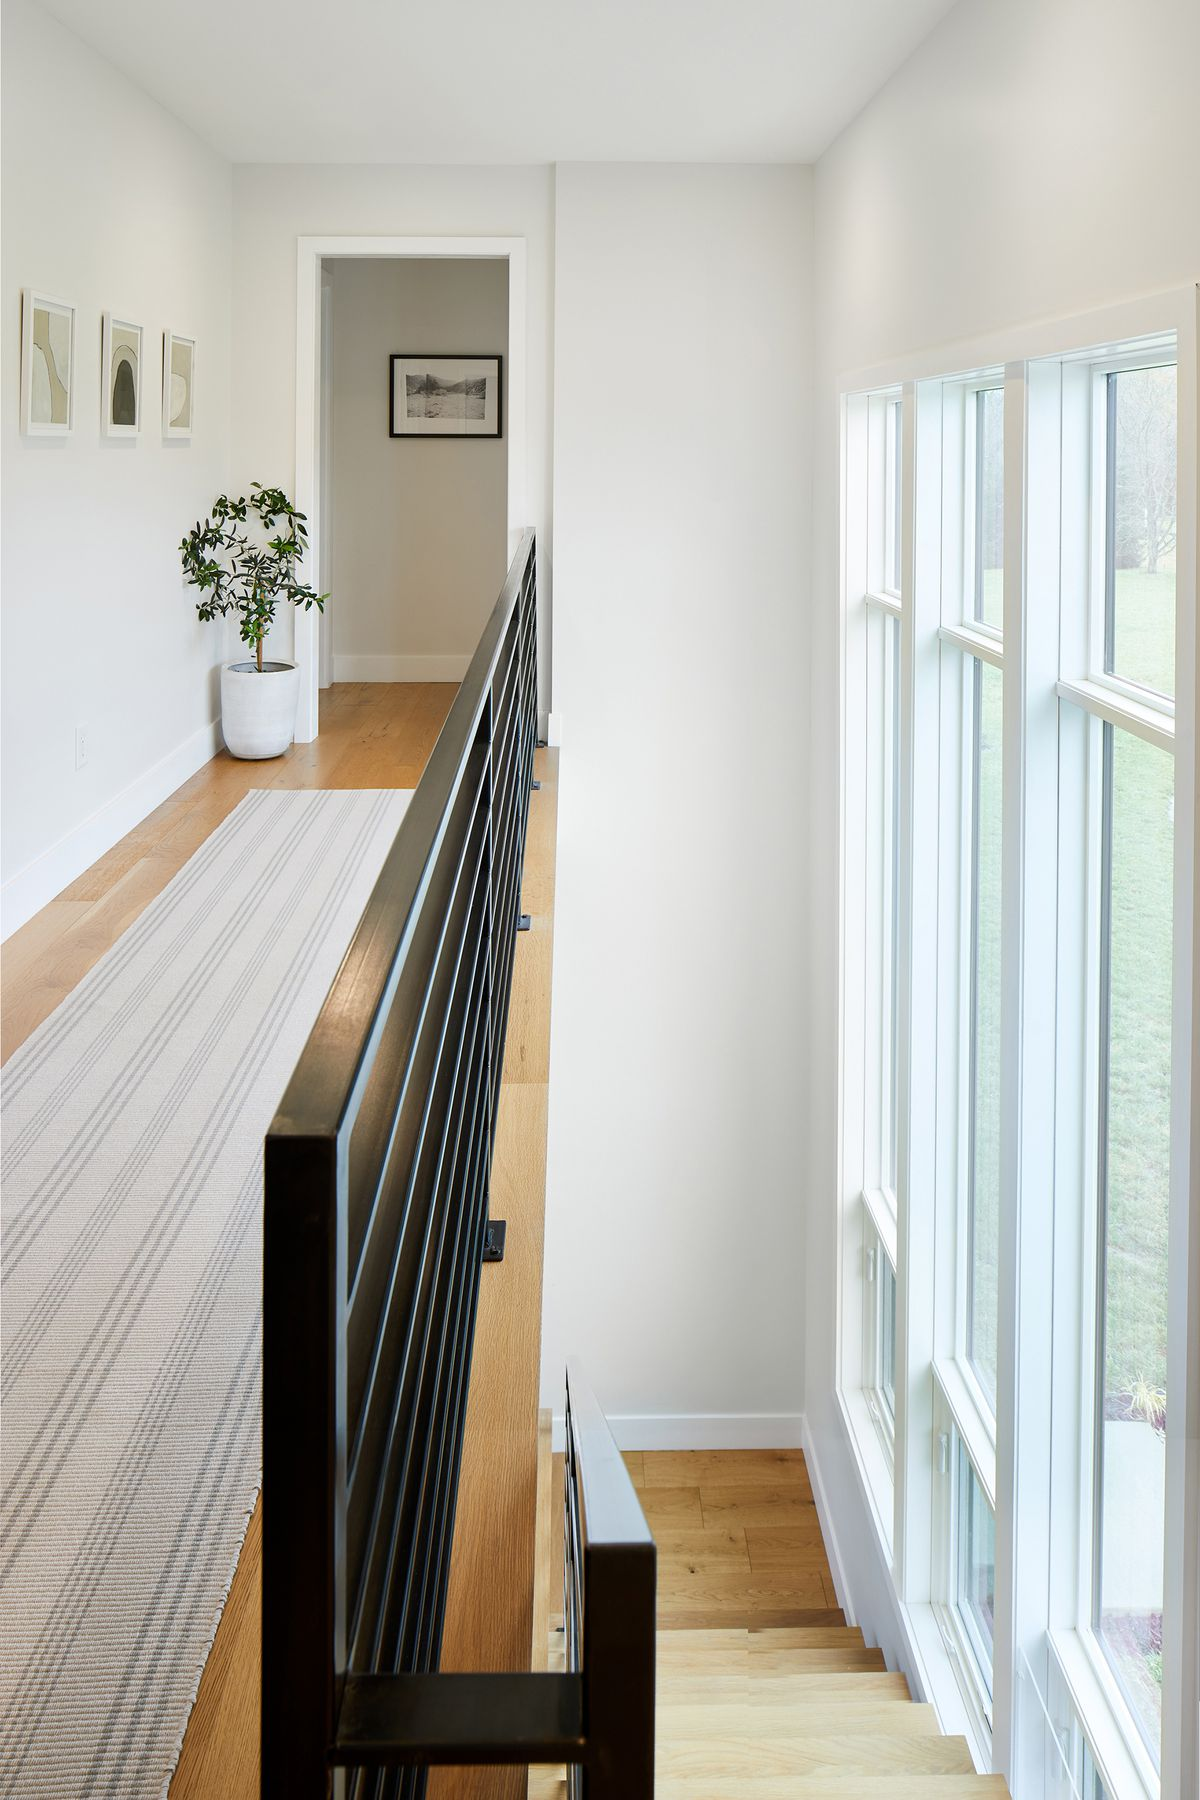 A hallway. The floor is hardwood and there is an area rug with a striped pattern. There are multiple framed works of art hanging on the wall which is painted white. The other wall has floor to ceiling windows that go up two stories high. The windowed wall